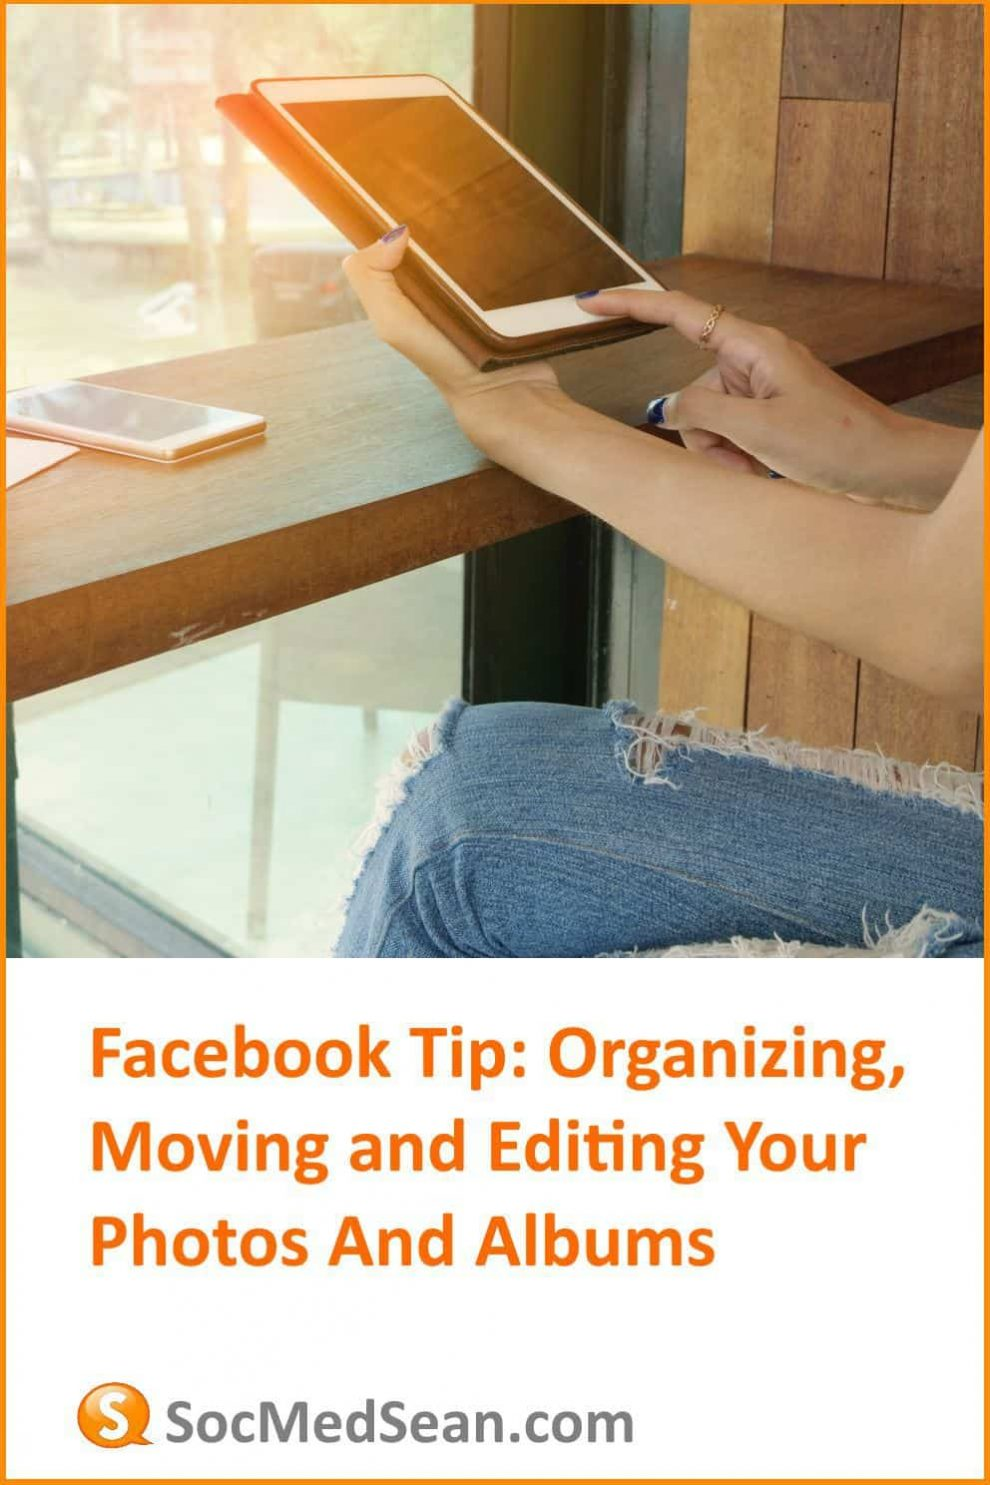 Facebook tip - organizing your albums and photos